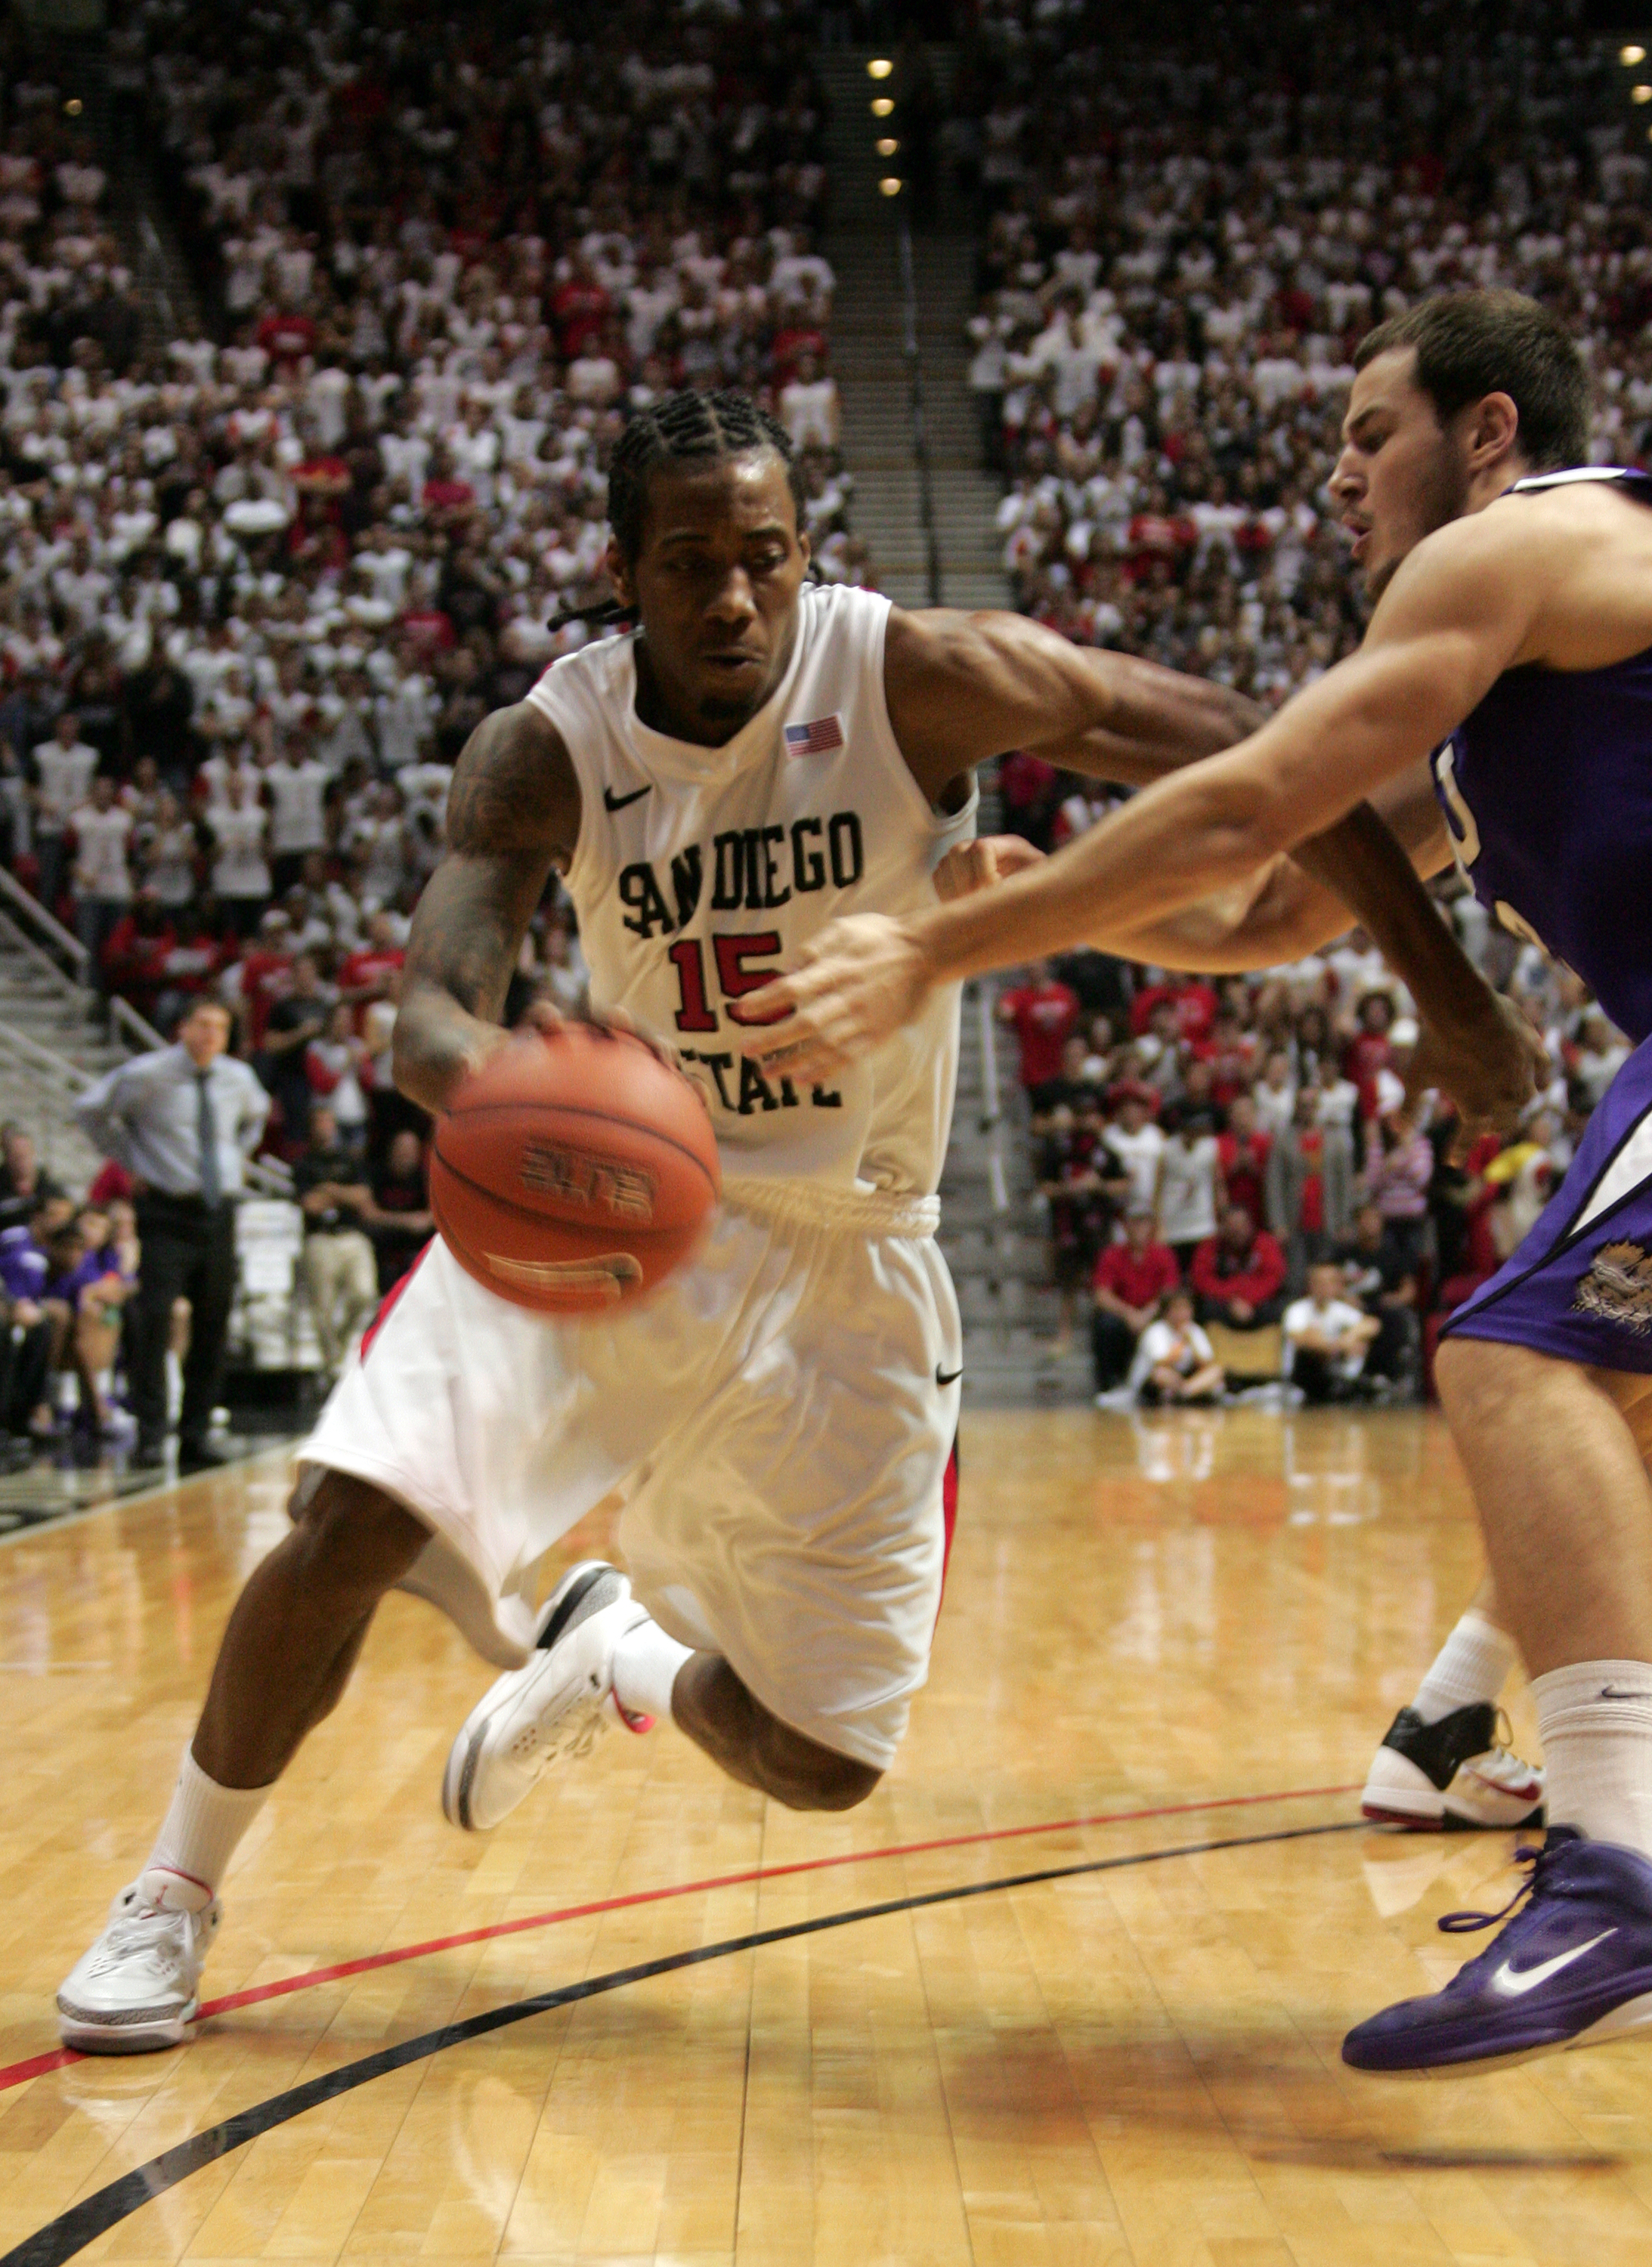 SAN DIEGO, CA - FEBRUARY 5: Kawhi Leonard #15 of San Diego State dribbles the ball in the second half against TCU at Cox Arena on February 5, 2011 in San Diego. SDSU beat TCU 60-53.  (Photo by Kent Horner/Getty Images)